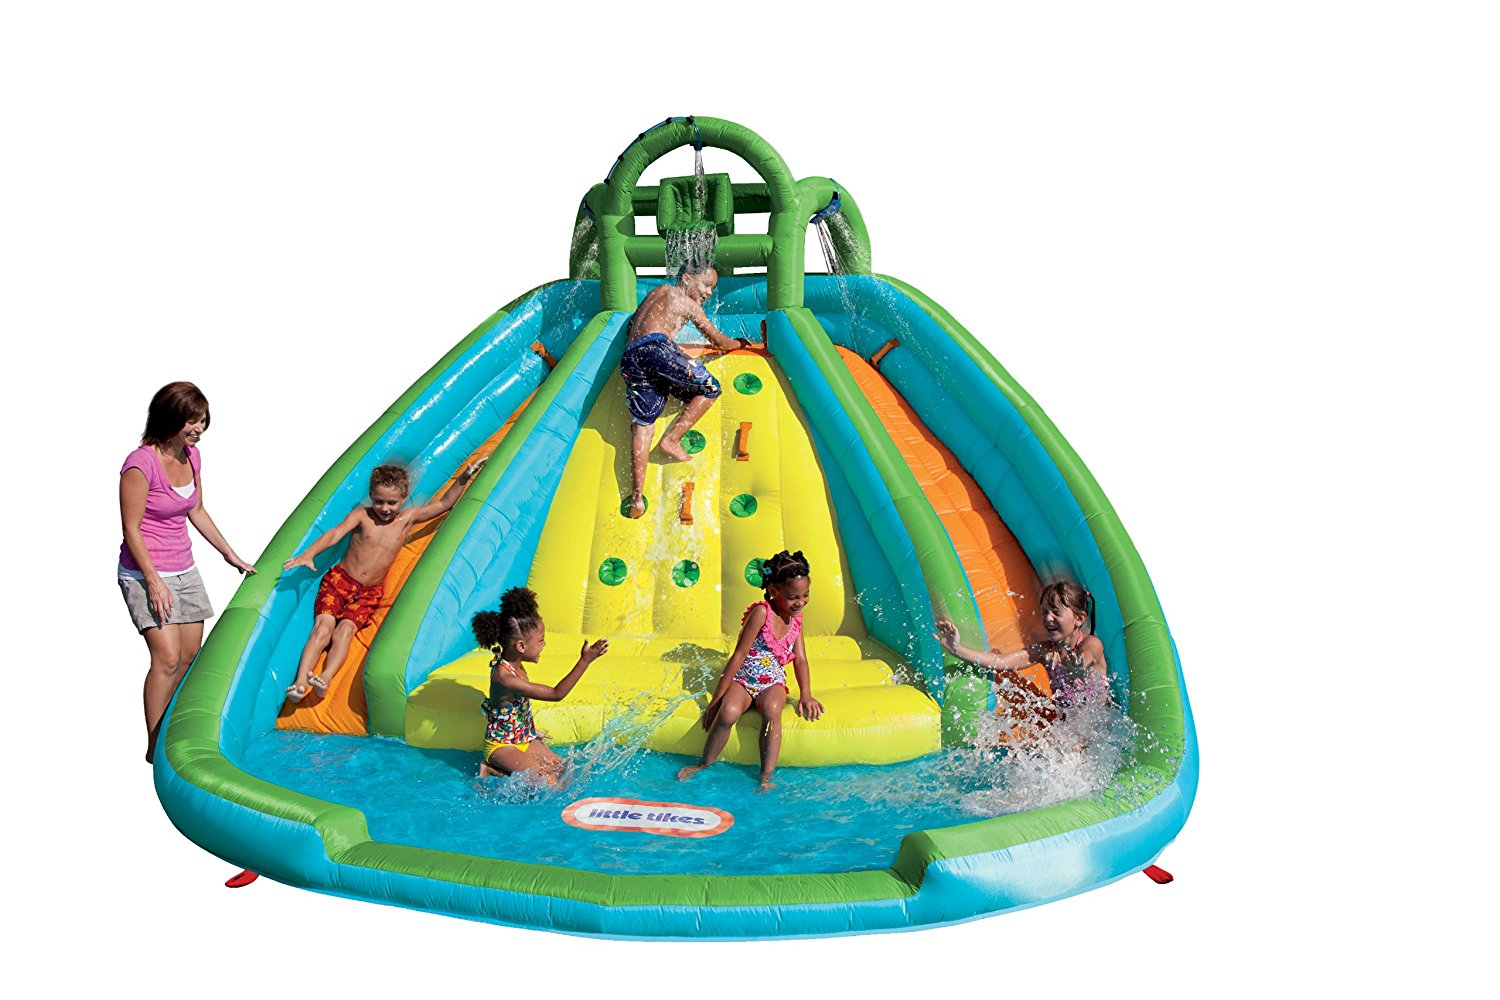 Top 10 Best Inflatable Pool Slides in 2021